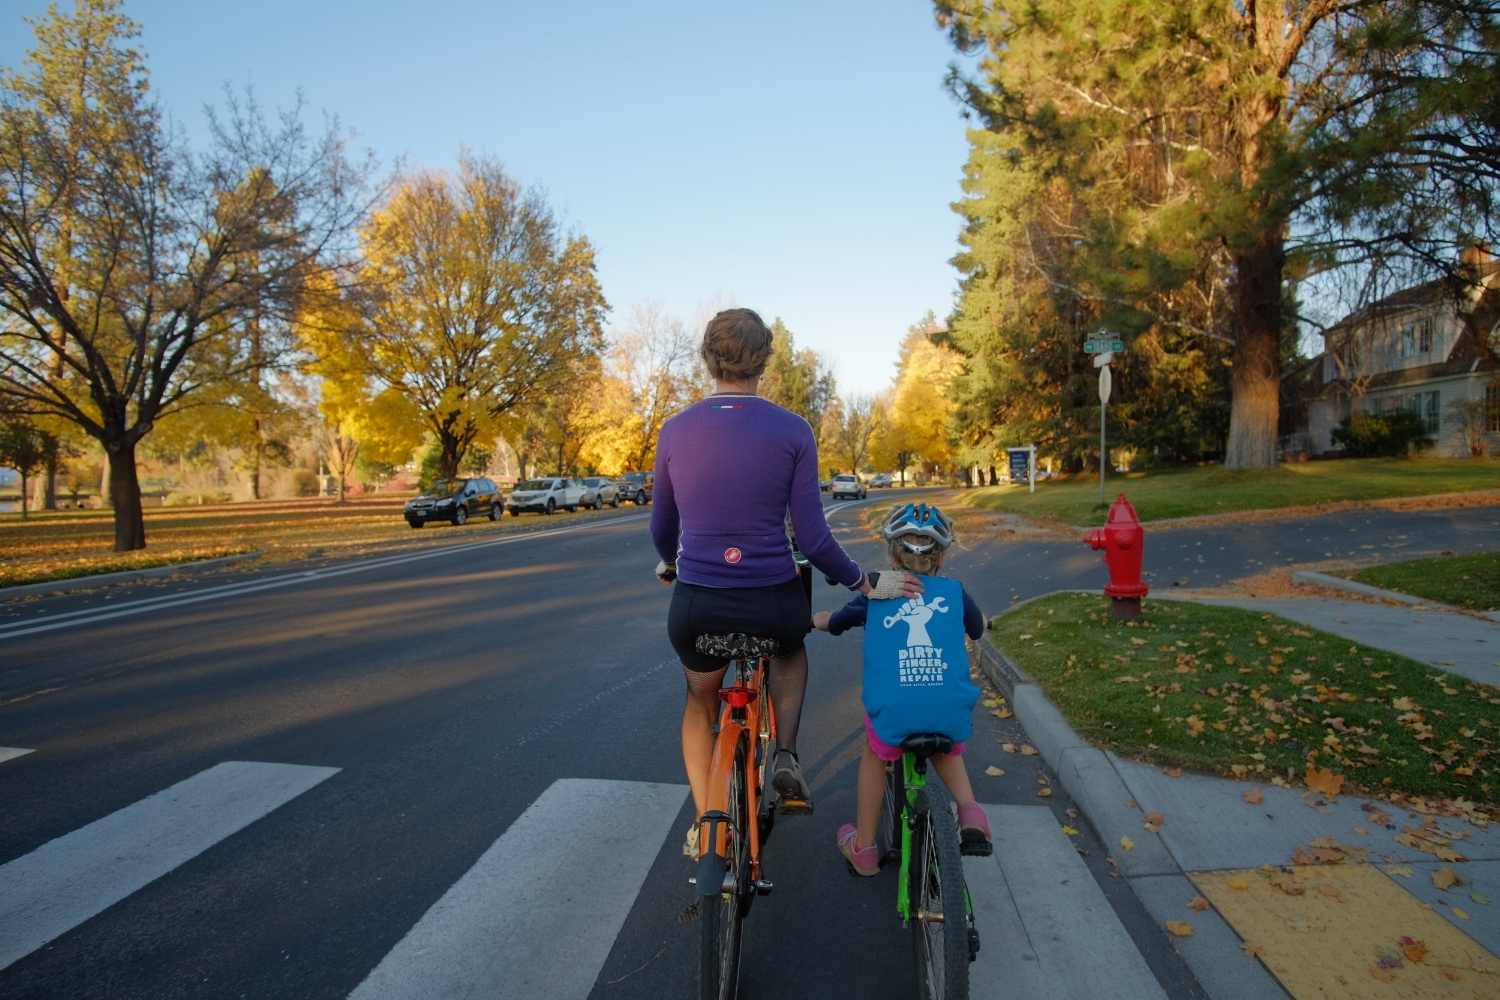 Founder Megan Ramey, riding with her daughter, Annika, on Riverside Boulevard, a street that might be ripe for some bollards to make it safer for families.